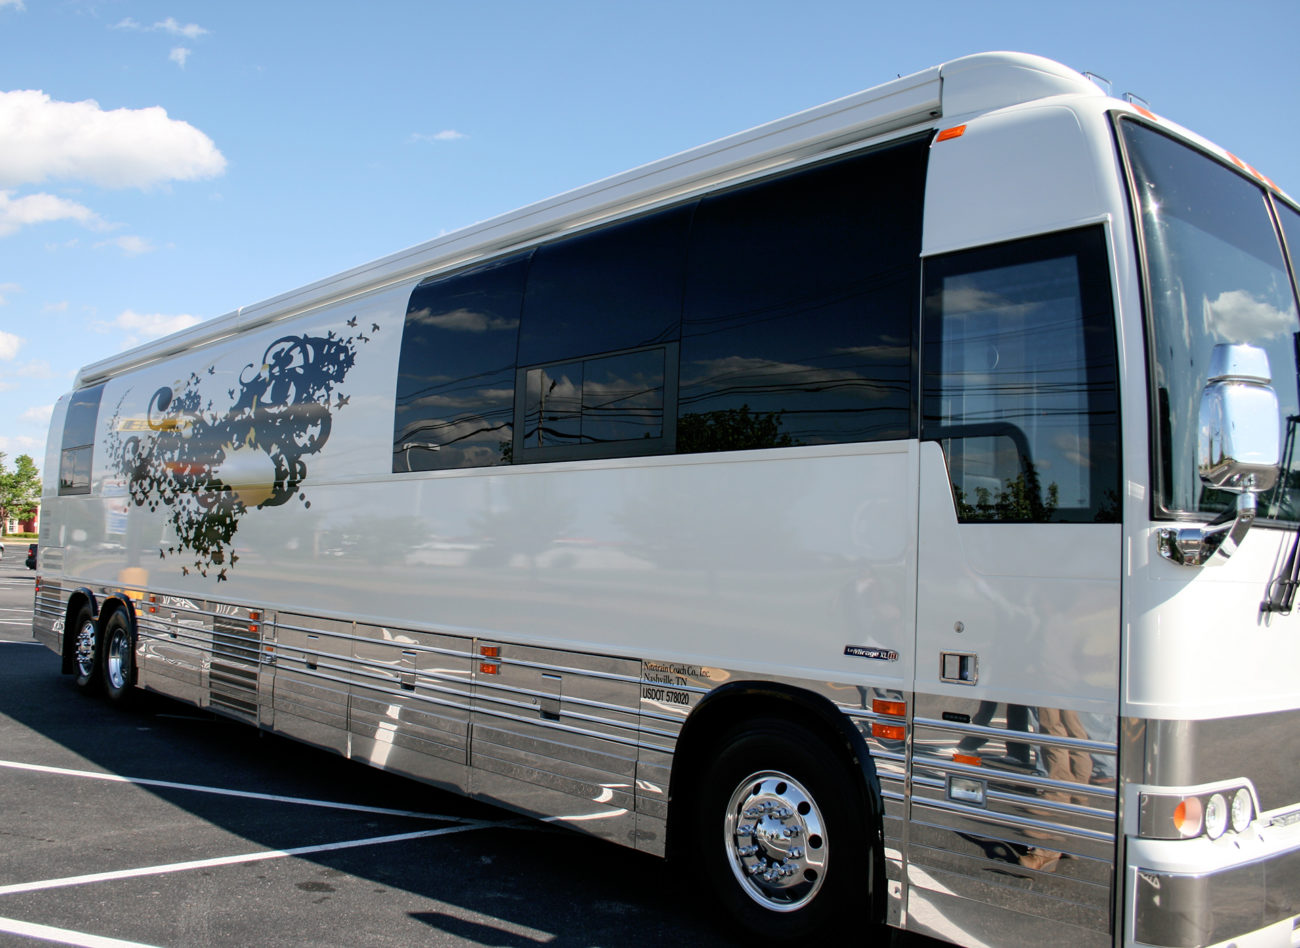 Taylor Swift Bus 1A